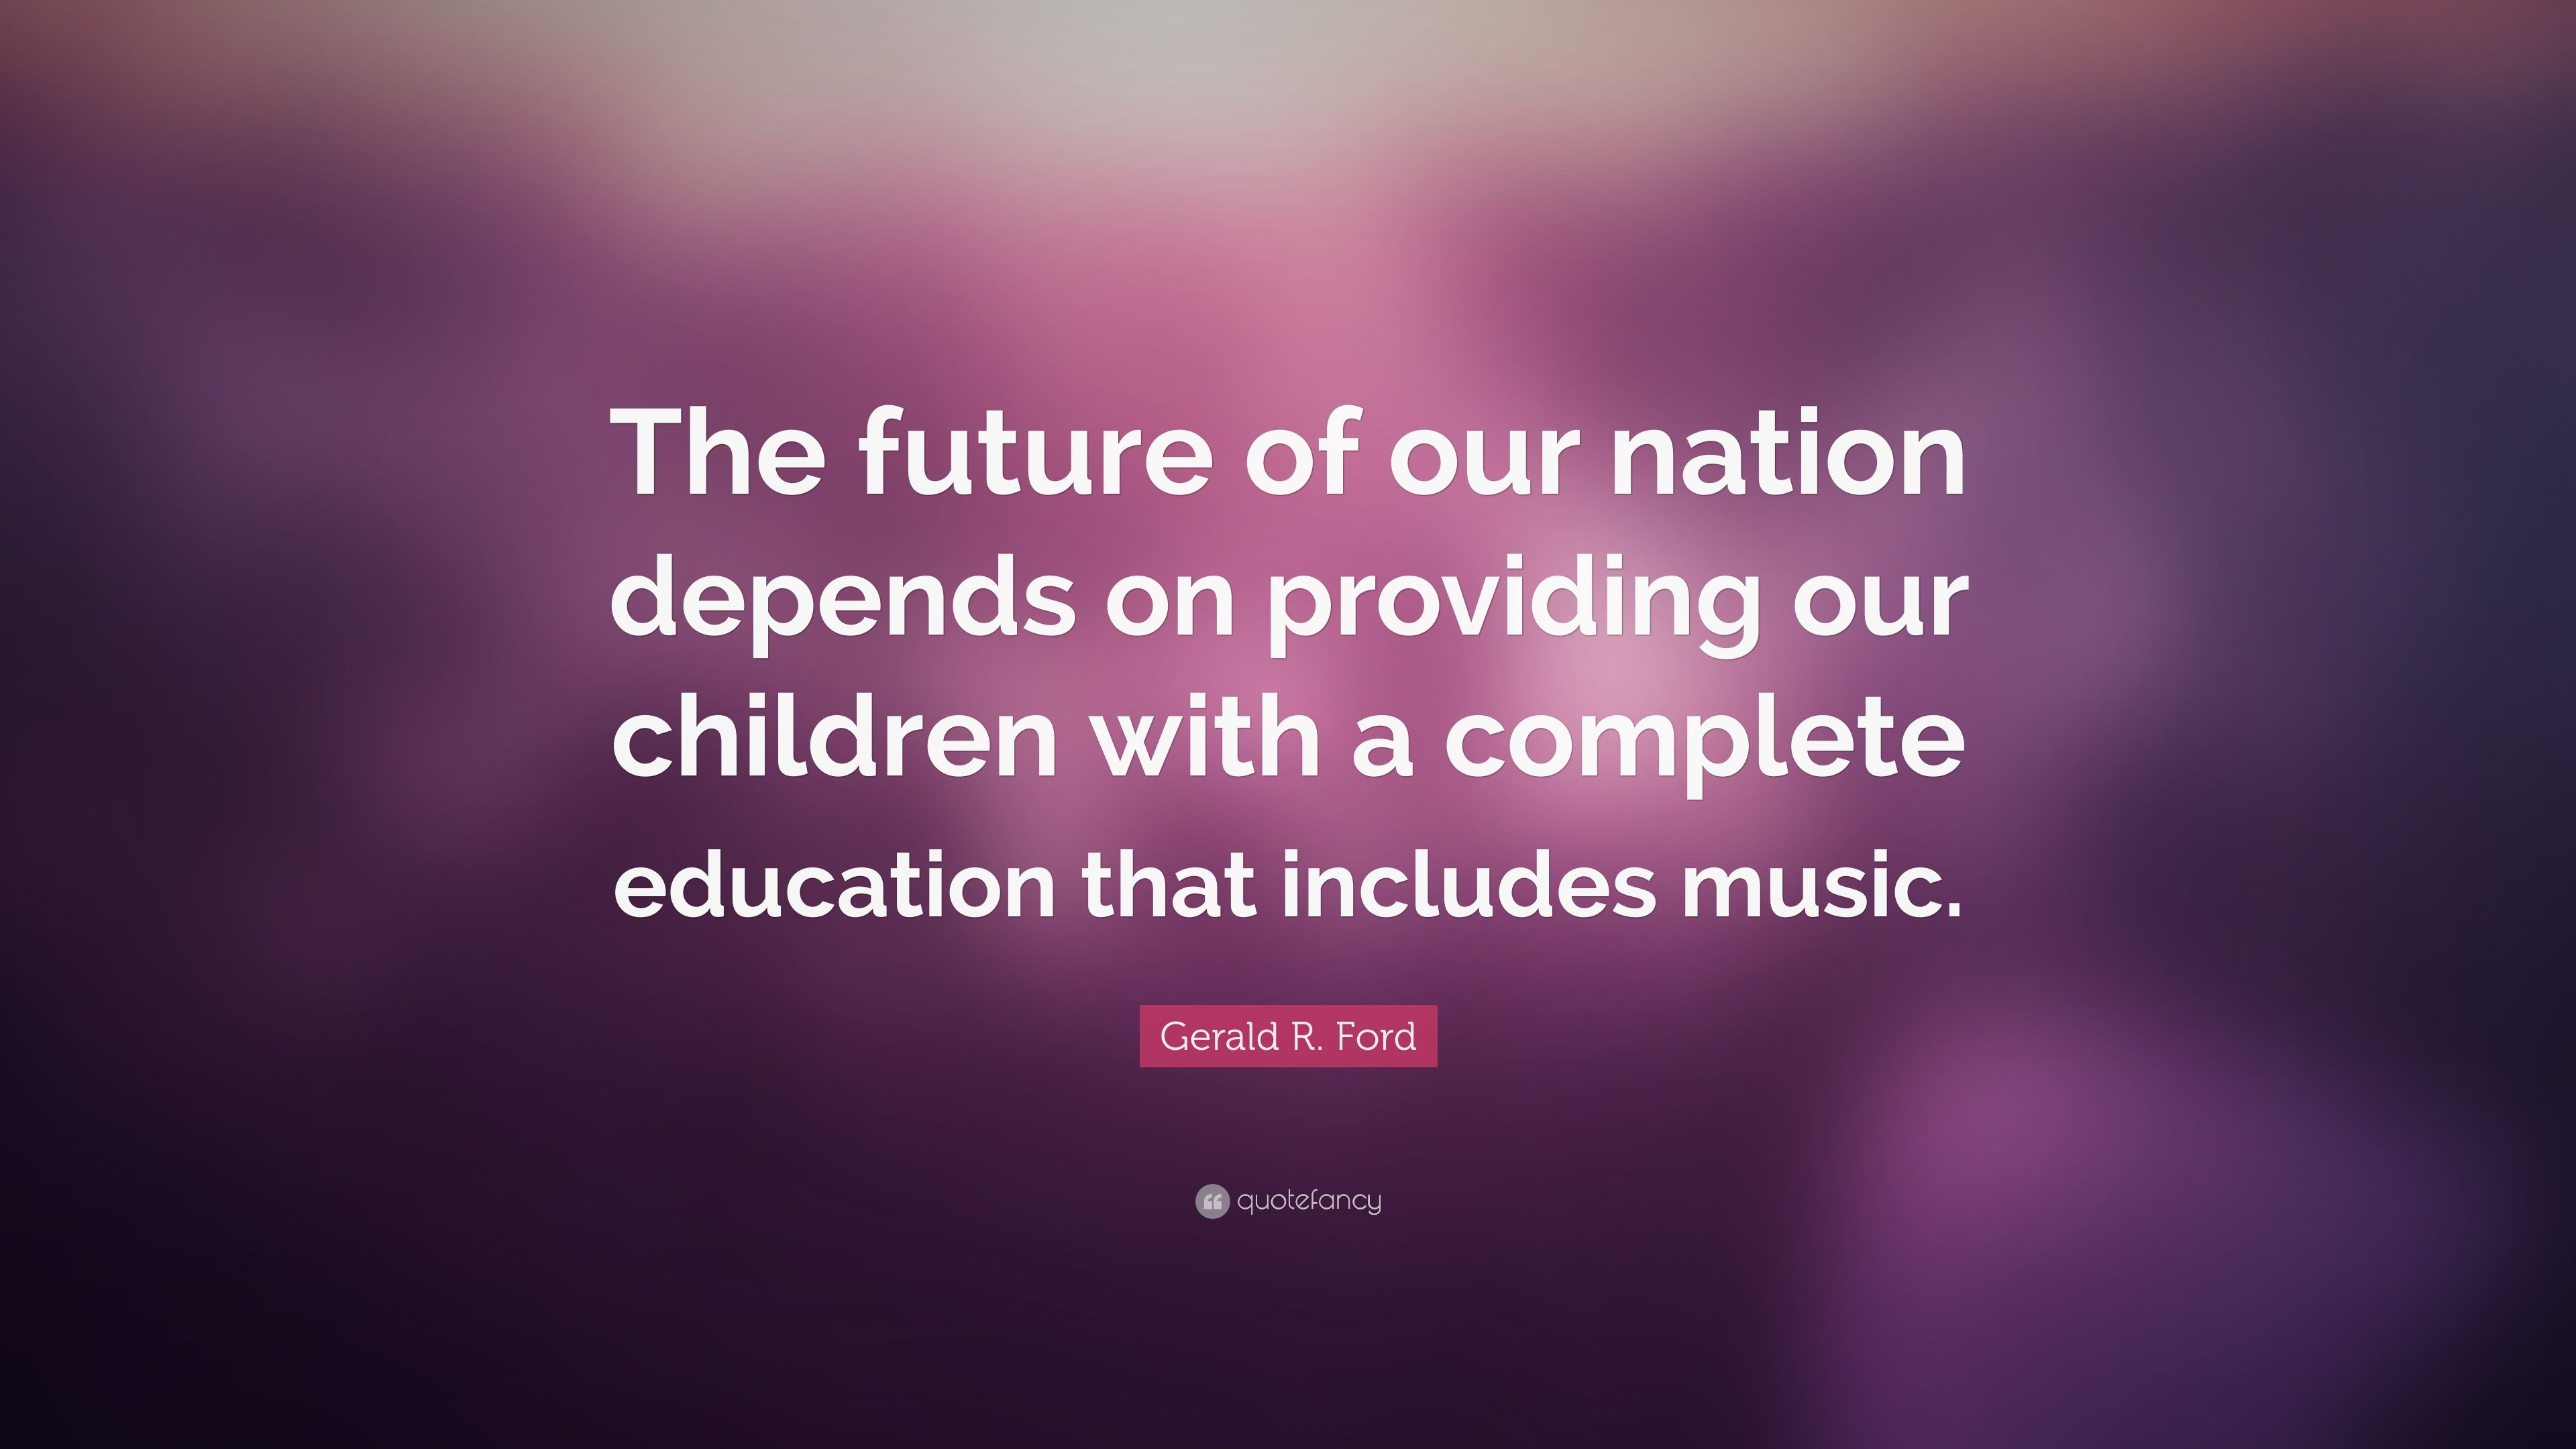 Children are the future of the nation essay